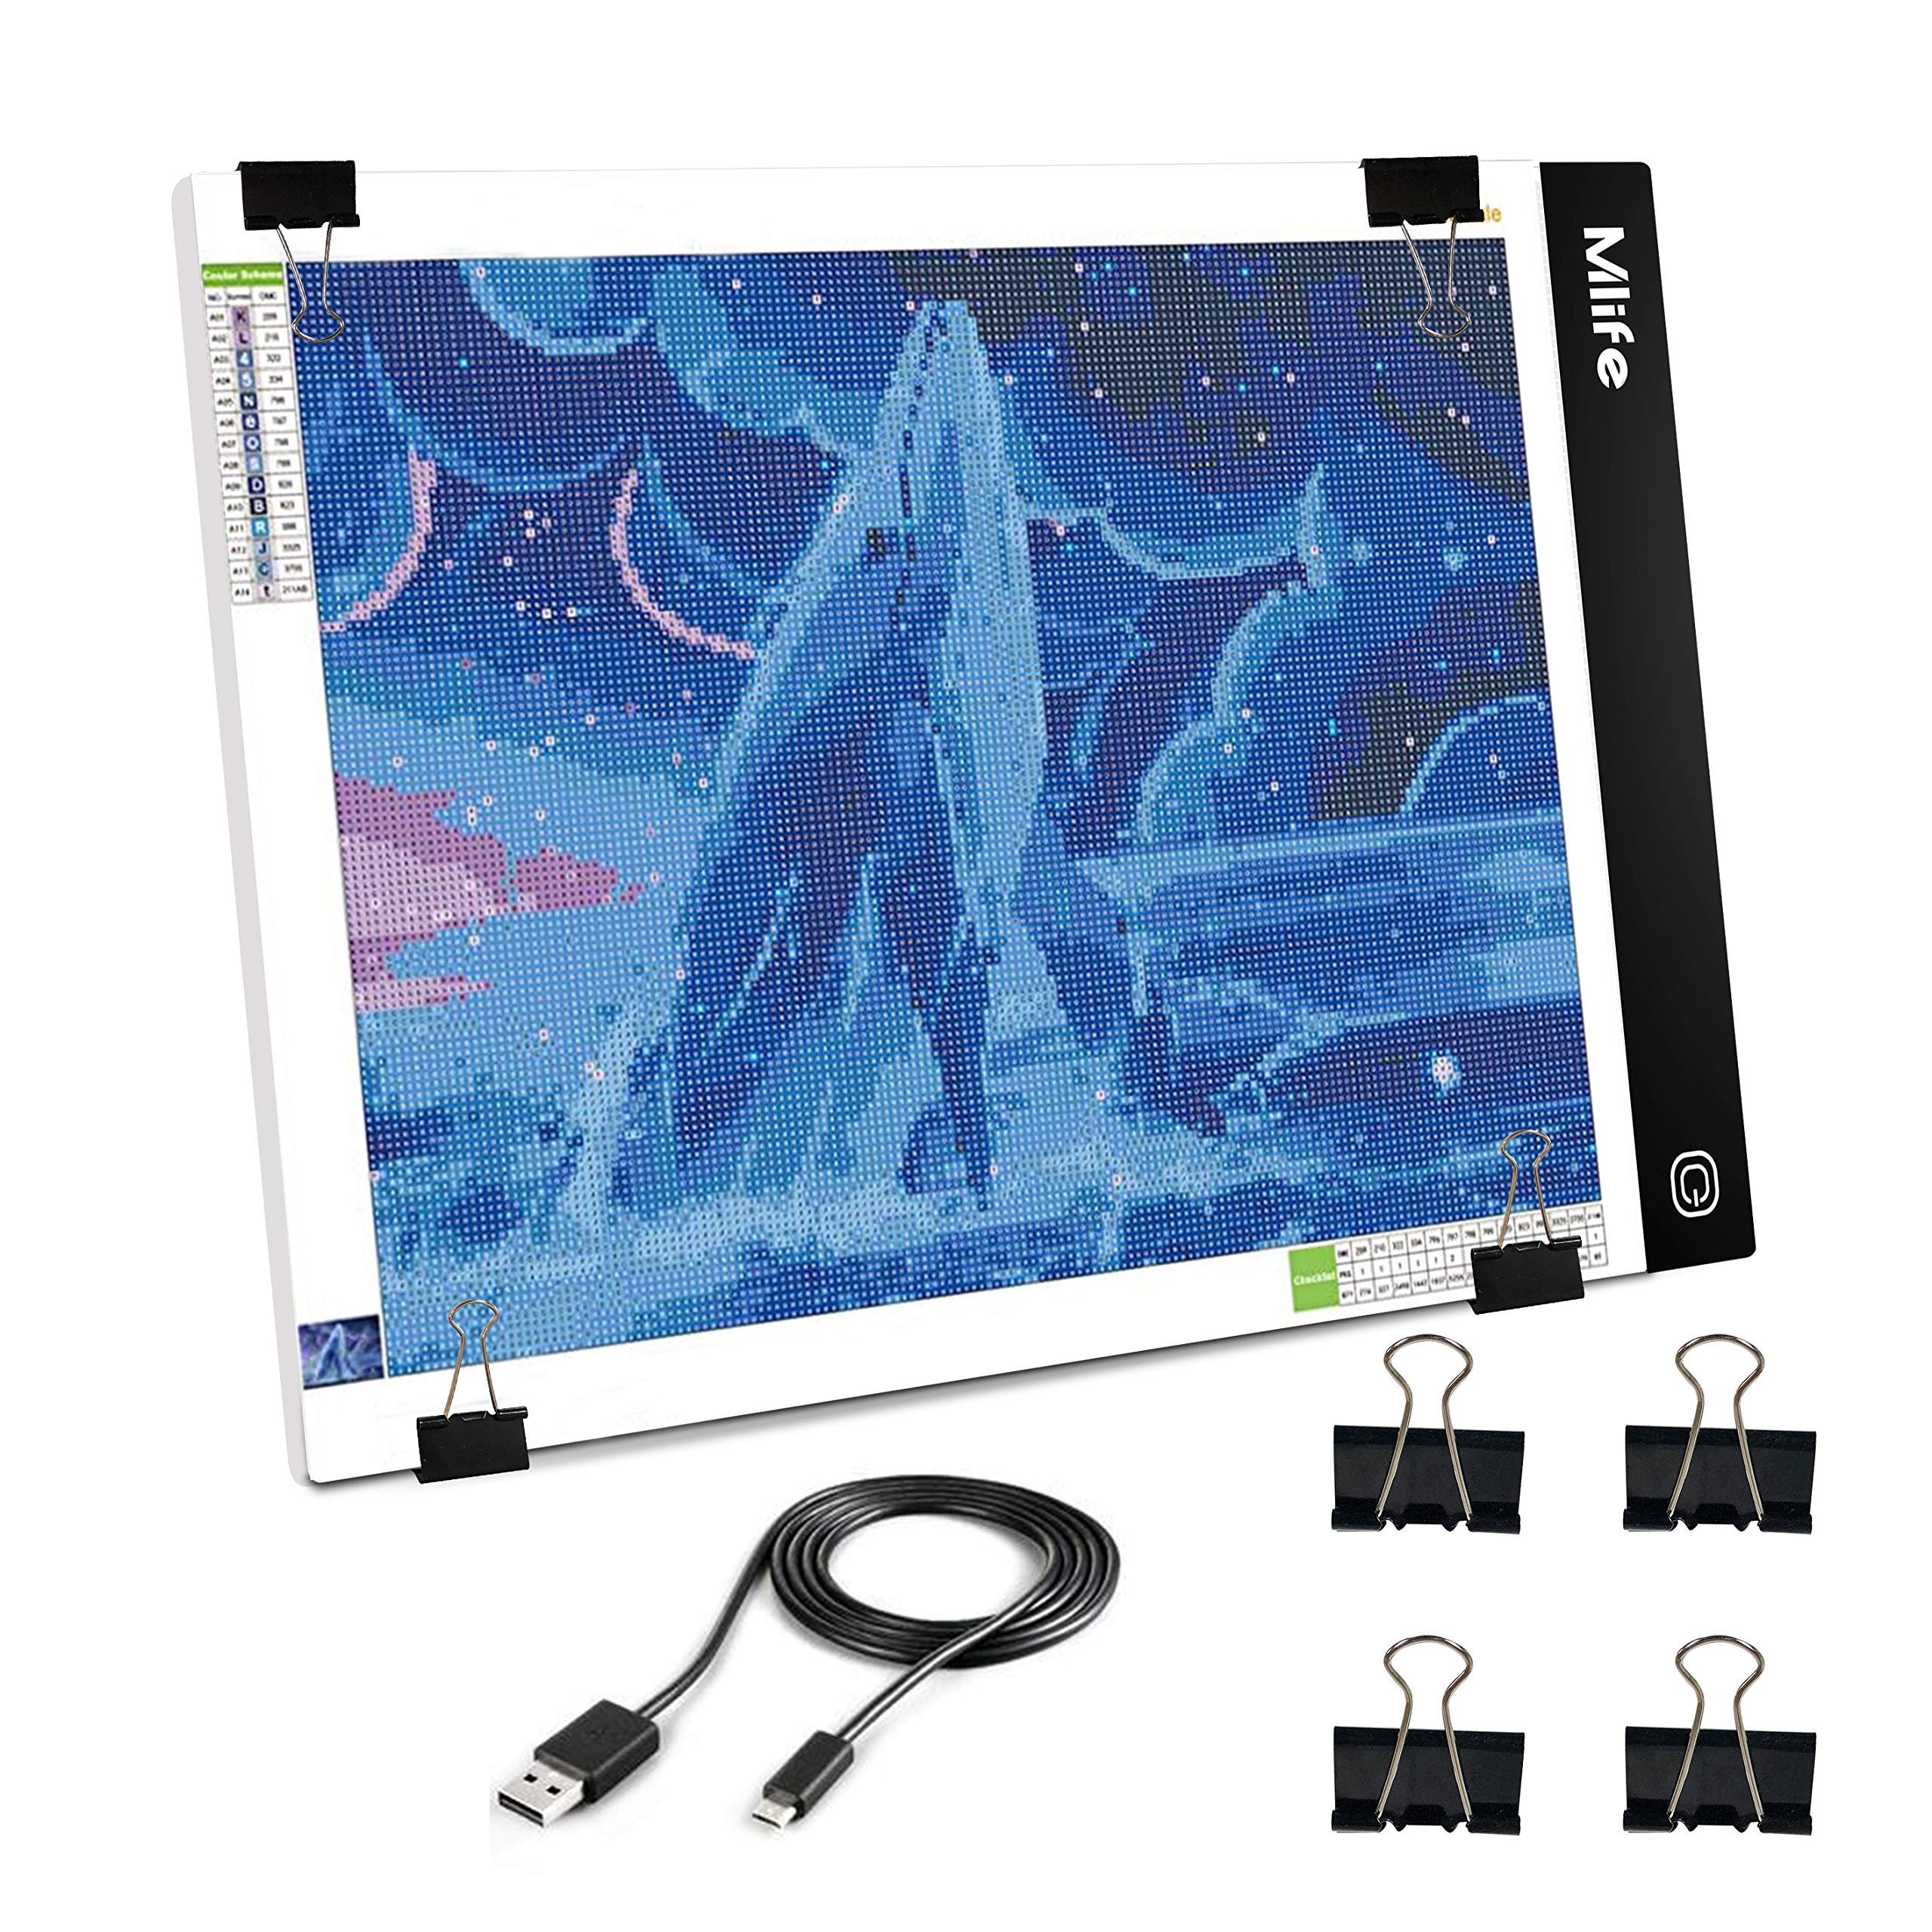 Mlife B4 LED Light Pad - Upgraded Diamond Painting Light Box Dimmable Tracing Light Board, Sketching, Animation, Drawing Light Box with 4 Fasten Clips by Mlife